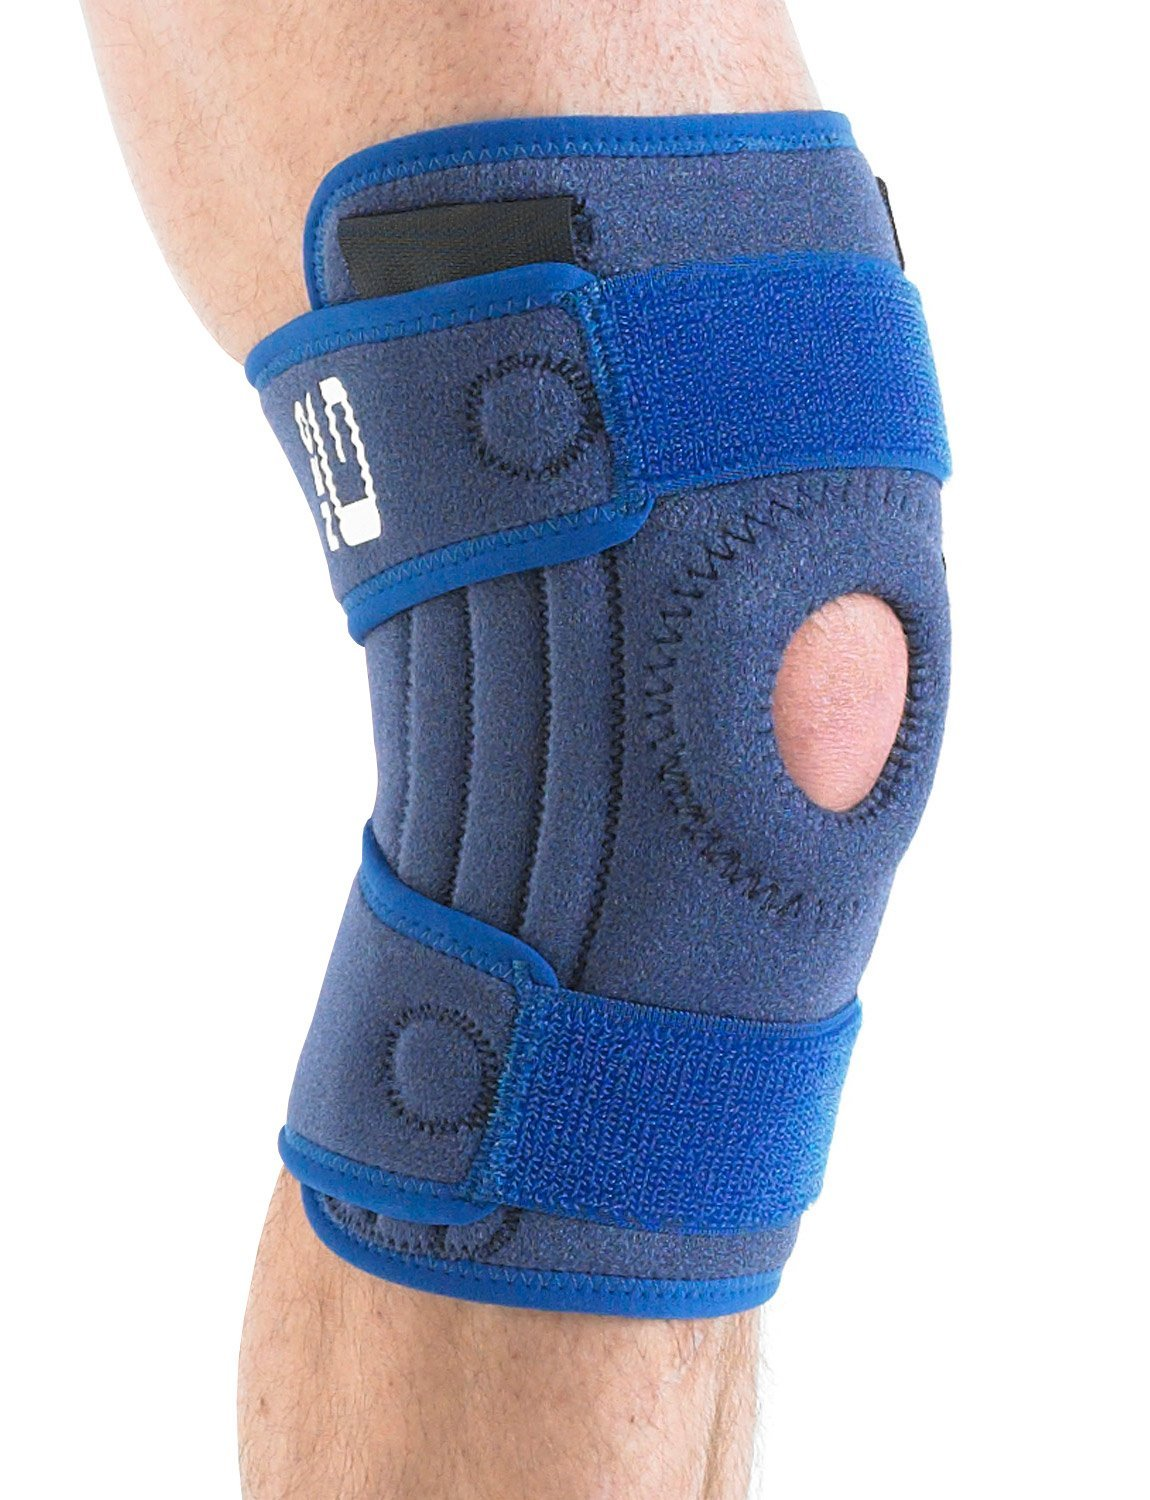 7679bdc3a3 5 Best Knee Brace for Skiing Reviews 2019 | Complete Buying Guide